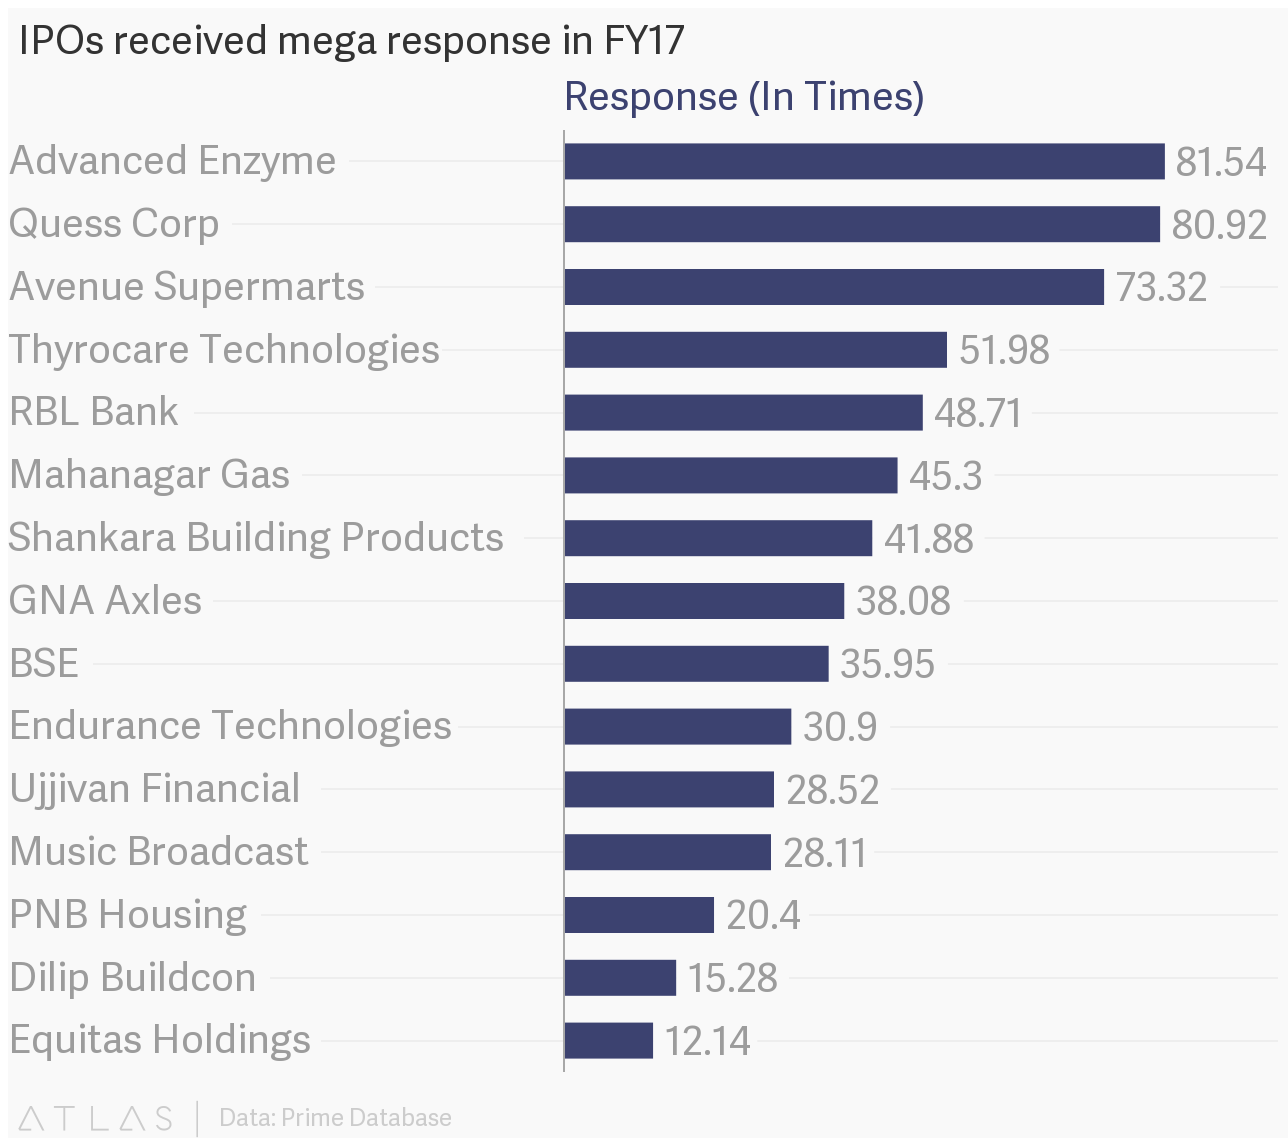 IPOs received mega response in FY17